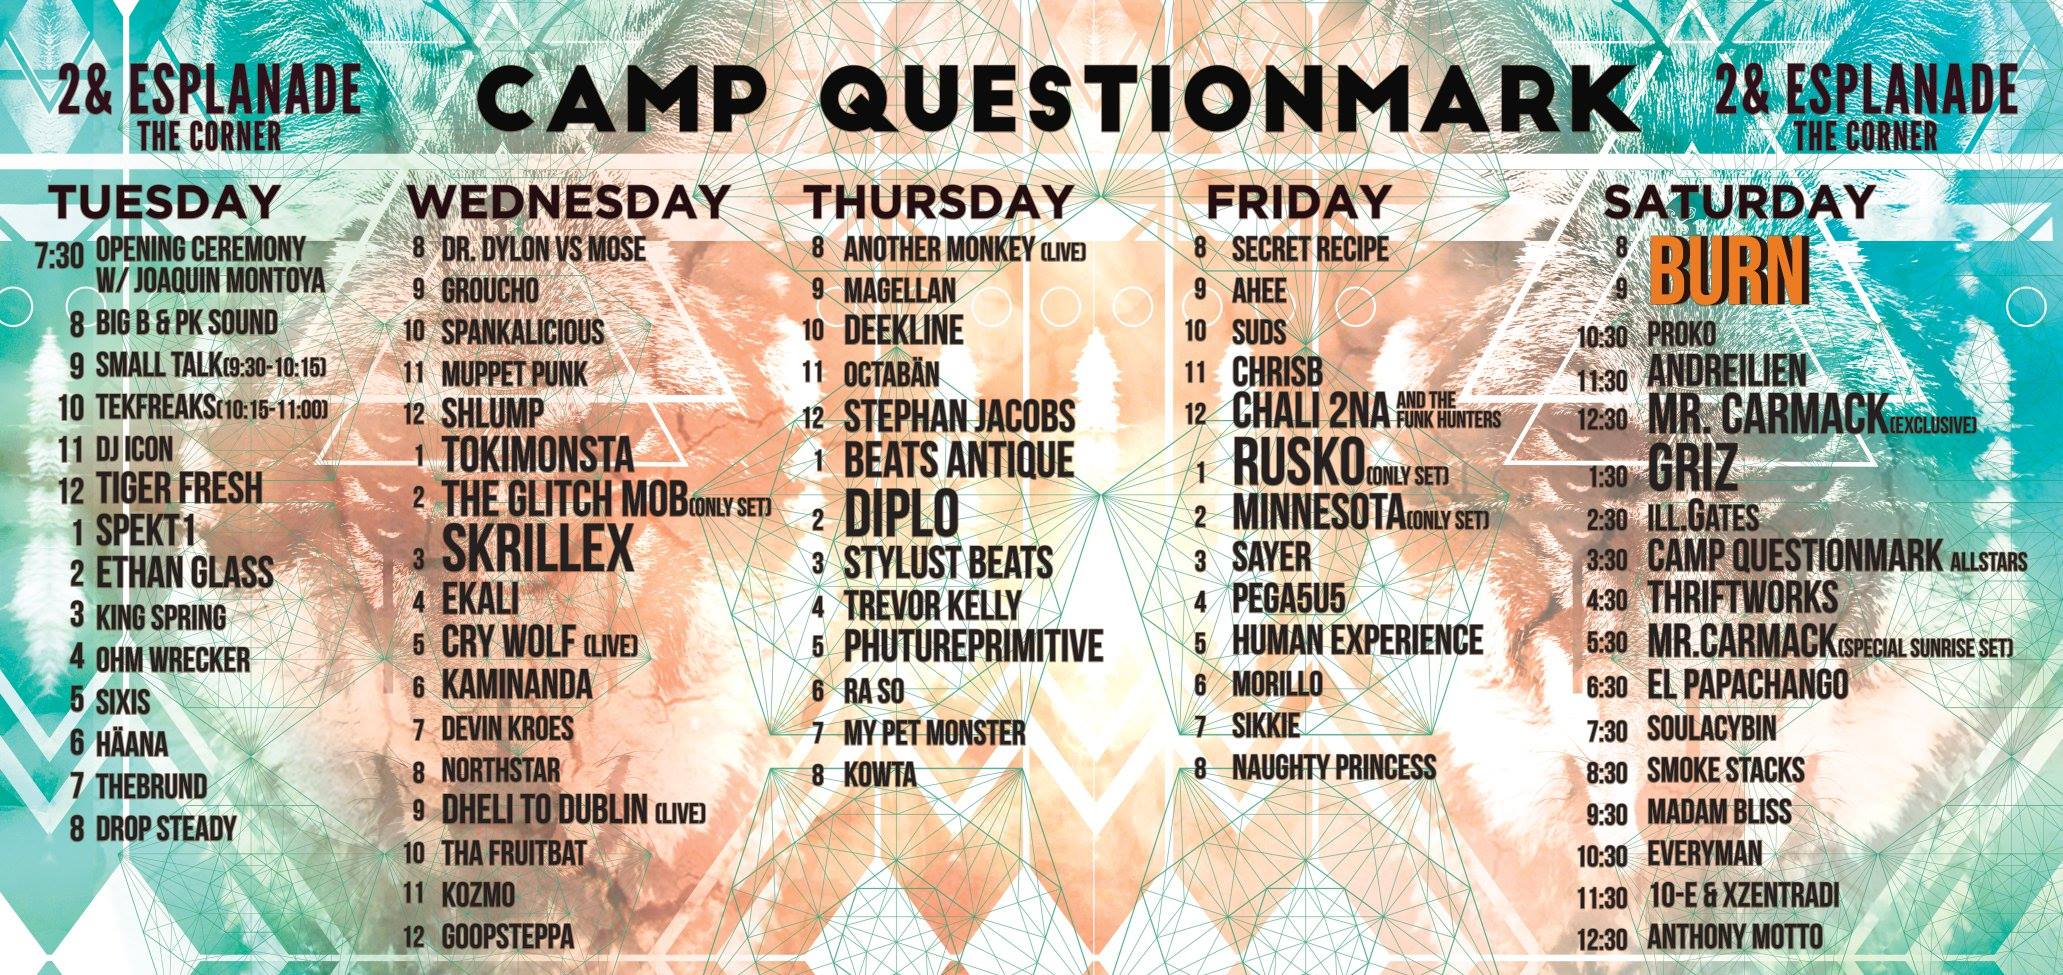 camp questionmark burning man 2016 lineup